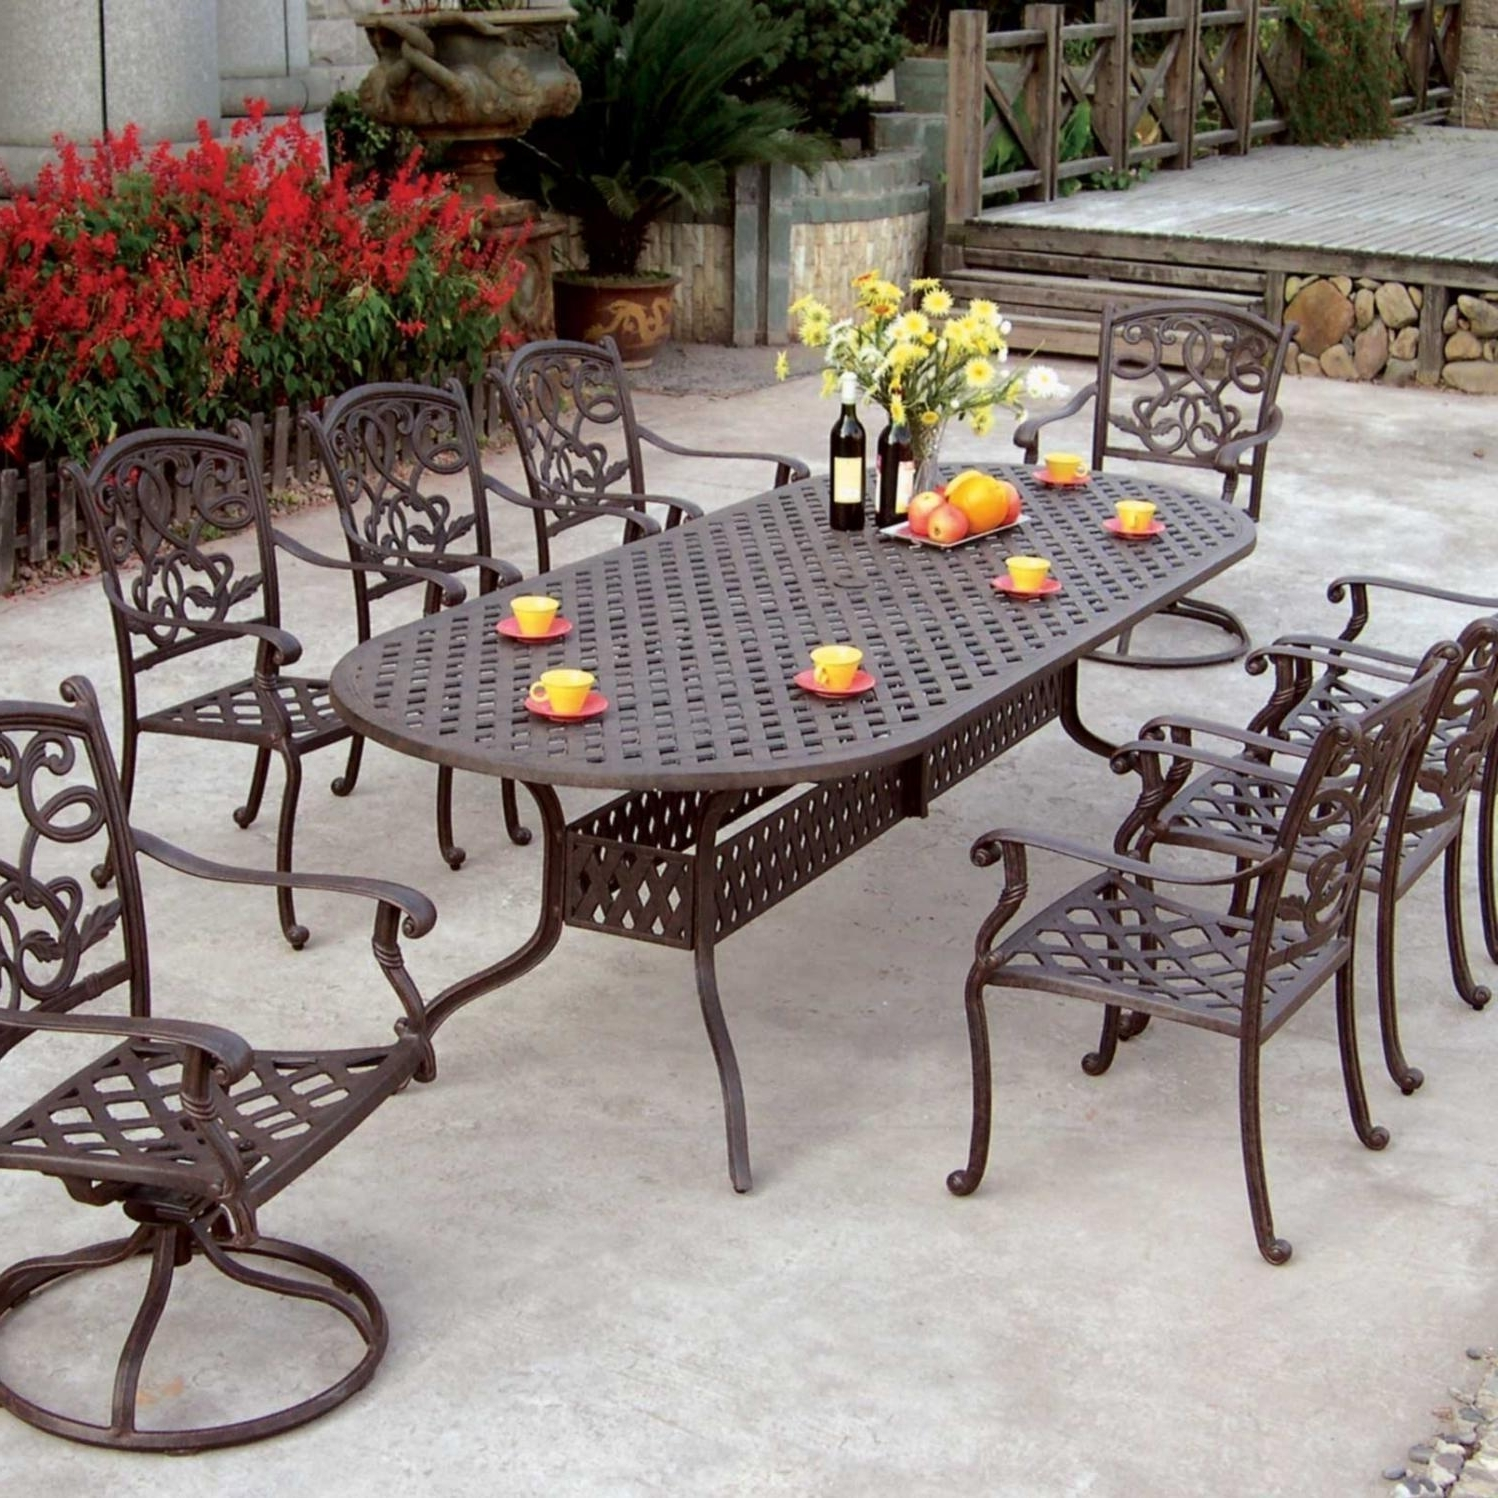 Fashionable Patio Conversation Dining Sets Within Cast Aluminum Patio Chairs Chairs Exquisite Aluminum Patio Furniture (View 7 of 20)